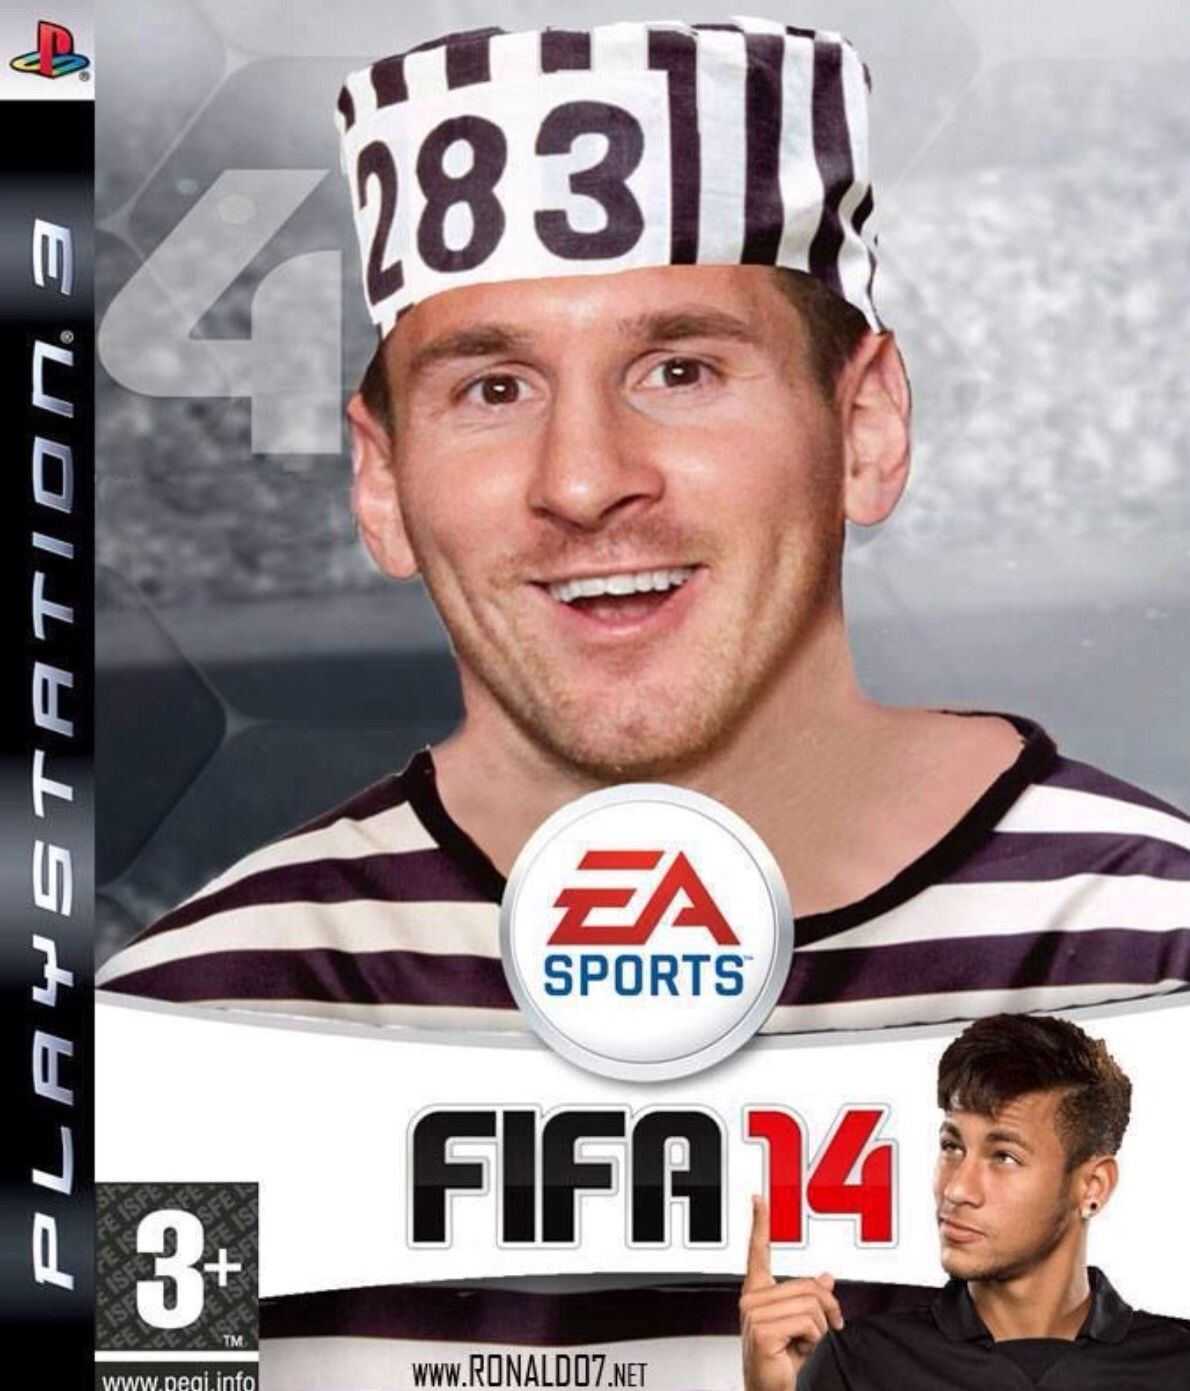 Because of his tax evasion problems, FIFA 14 have had to